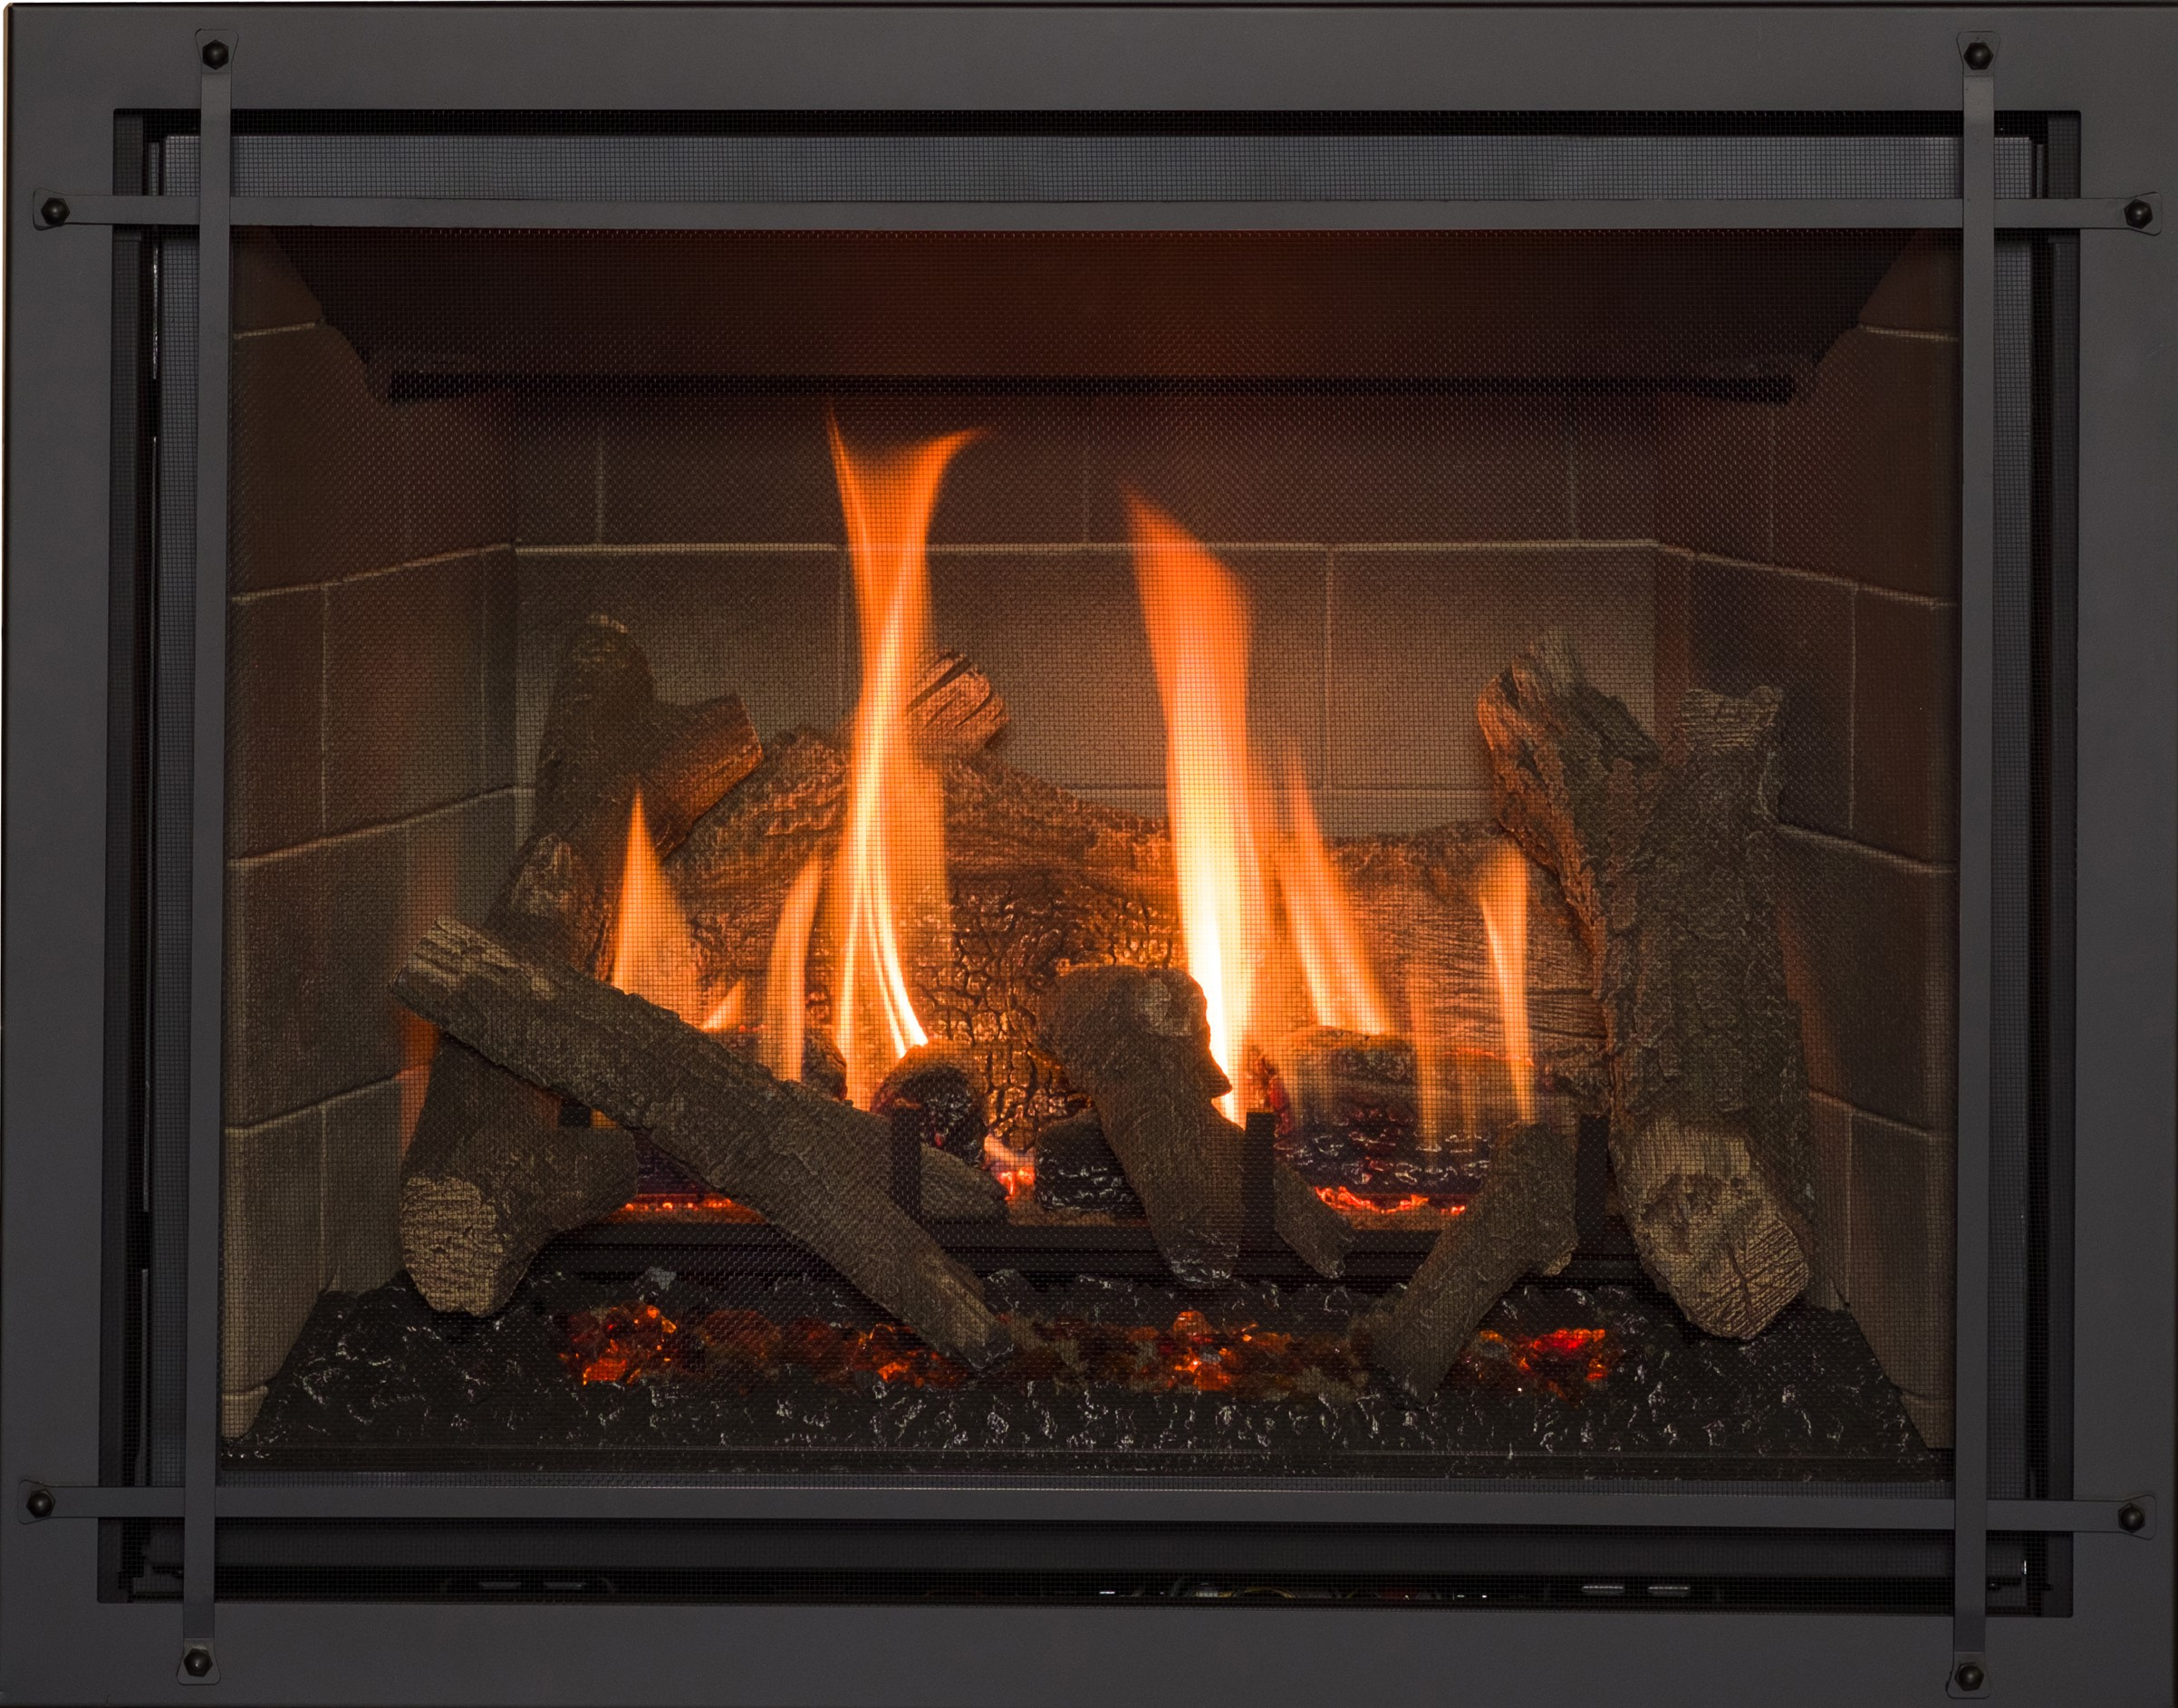 this is a linked image of a Kozy Heat Springfield 36 gas fireplace to its product page under related products